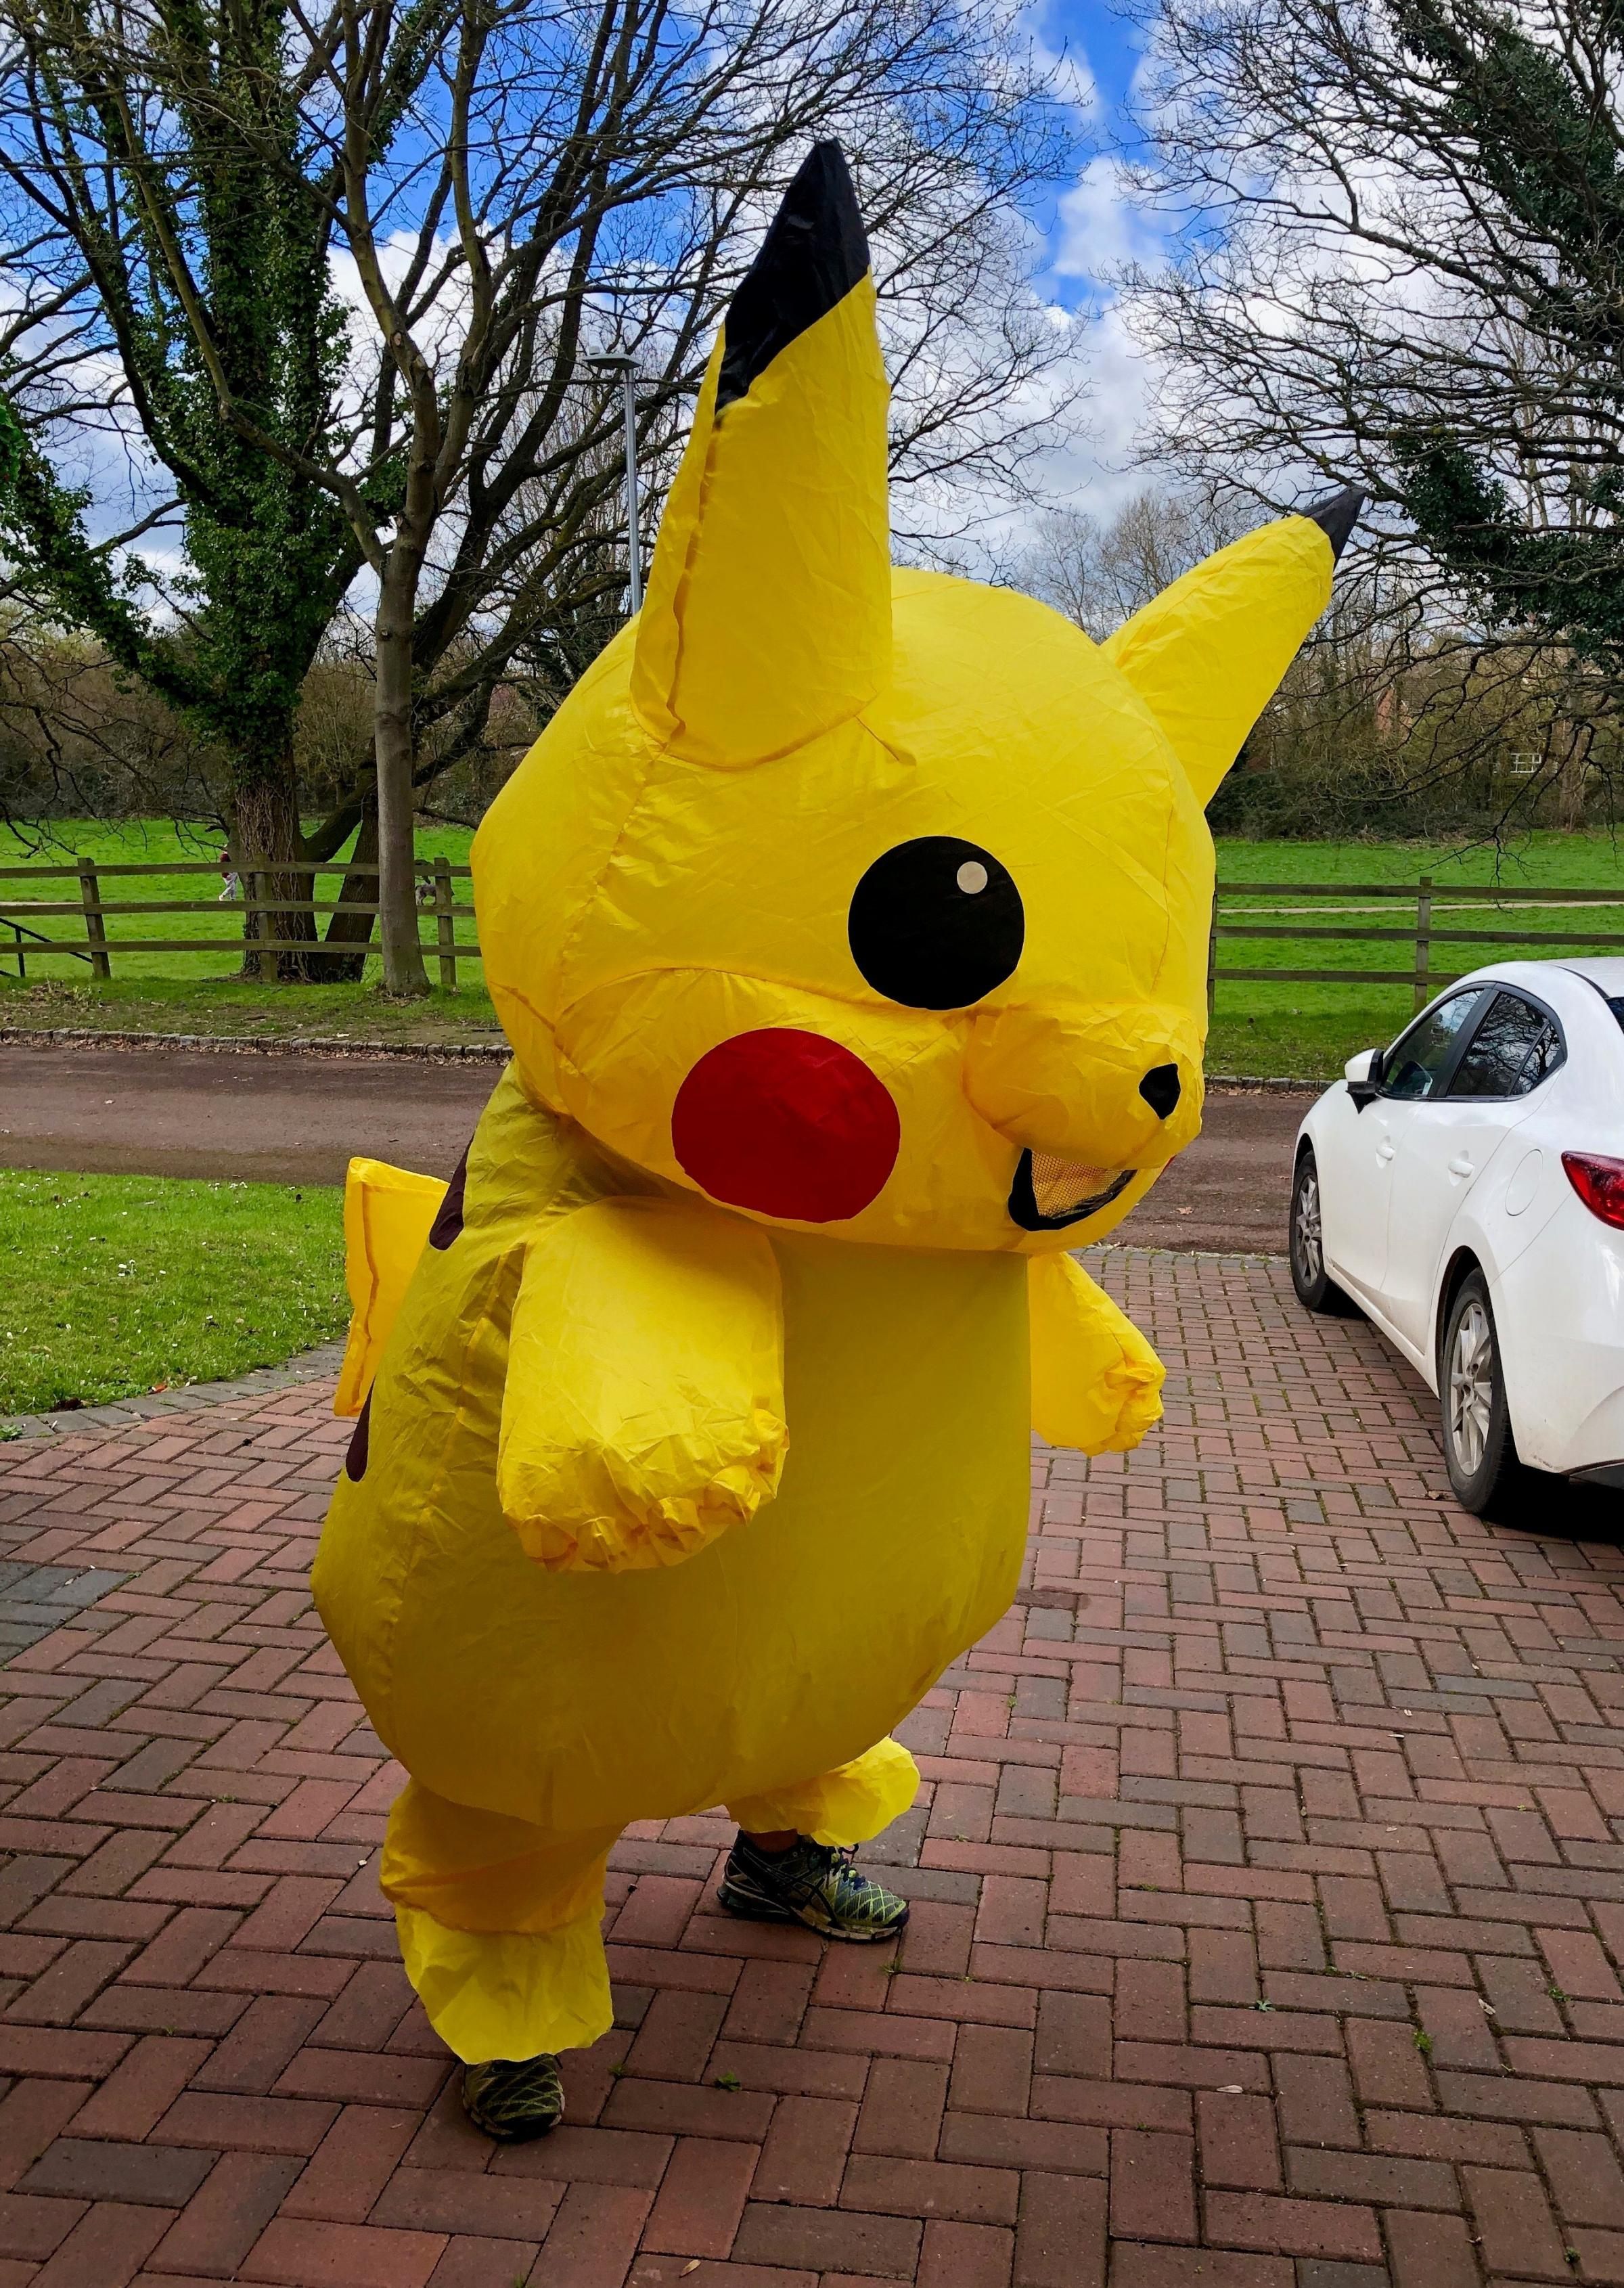 Wokingham man runs as Pikachu A dedicated supporter of a charity will be running in a marathon dressed as the famous Pokémon character Pikachu